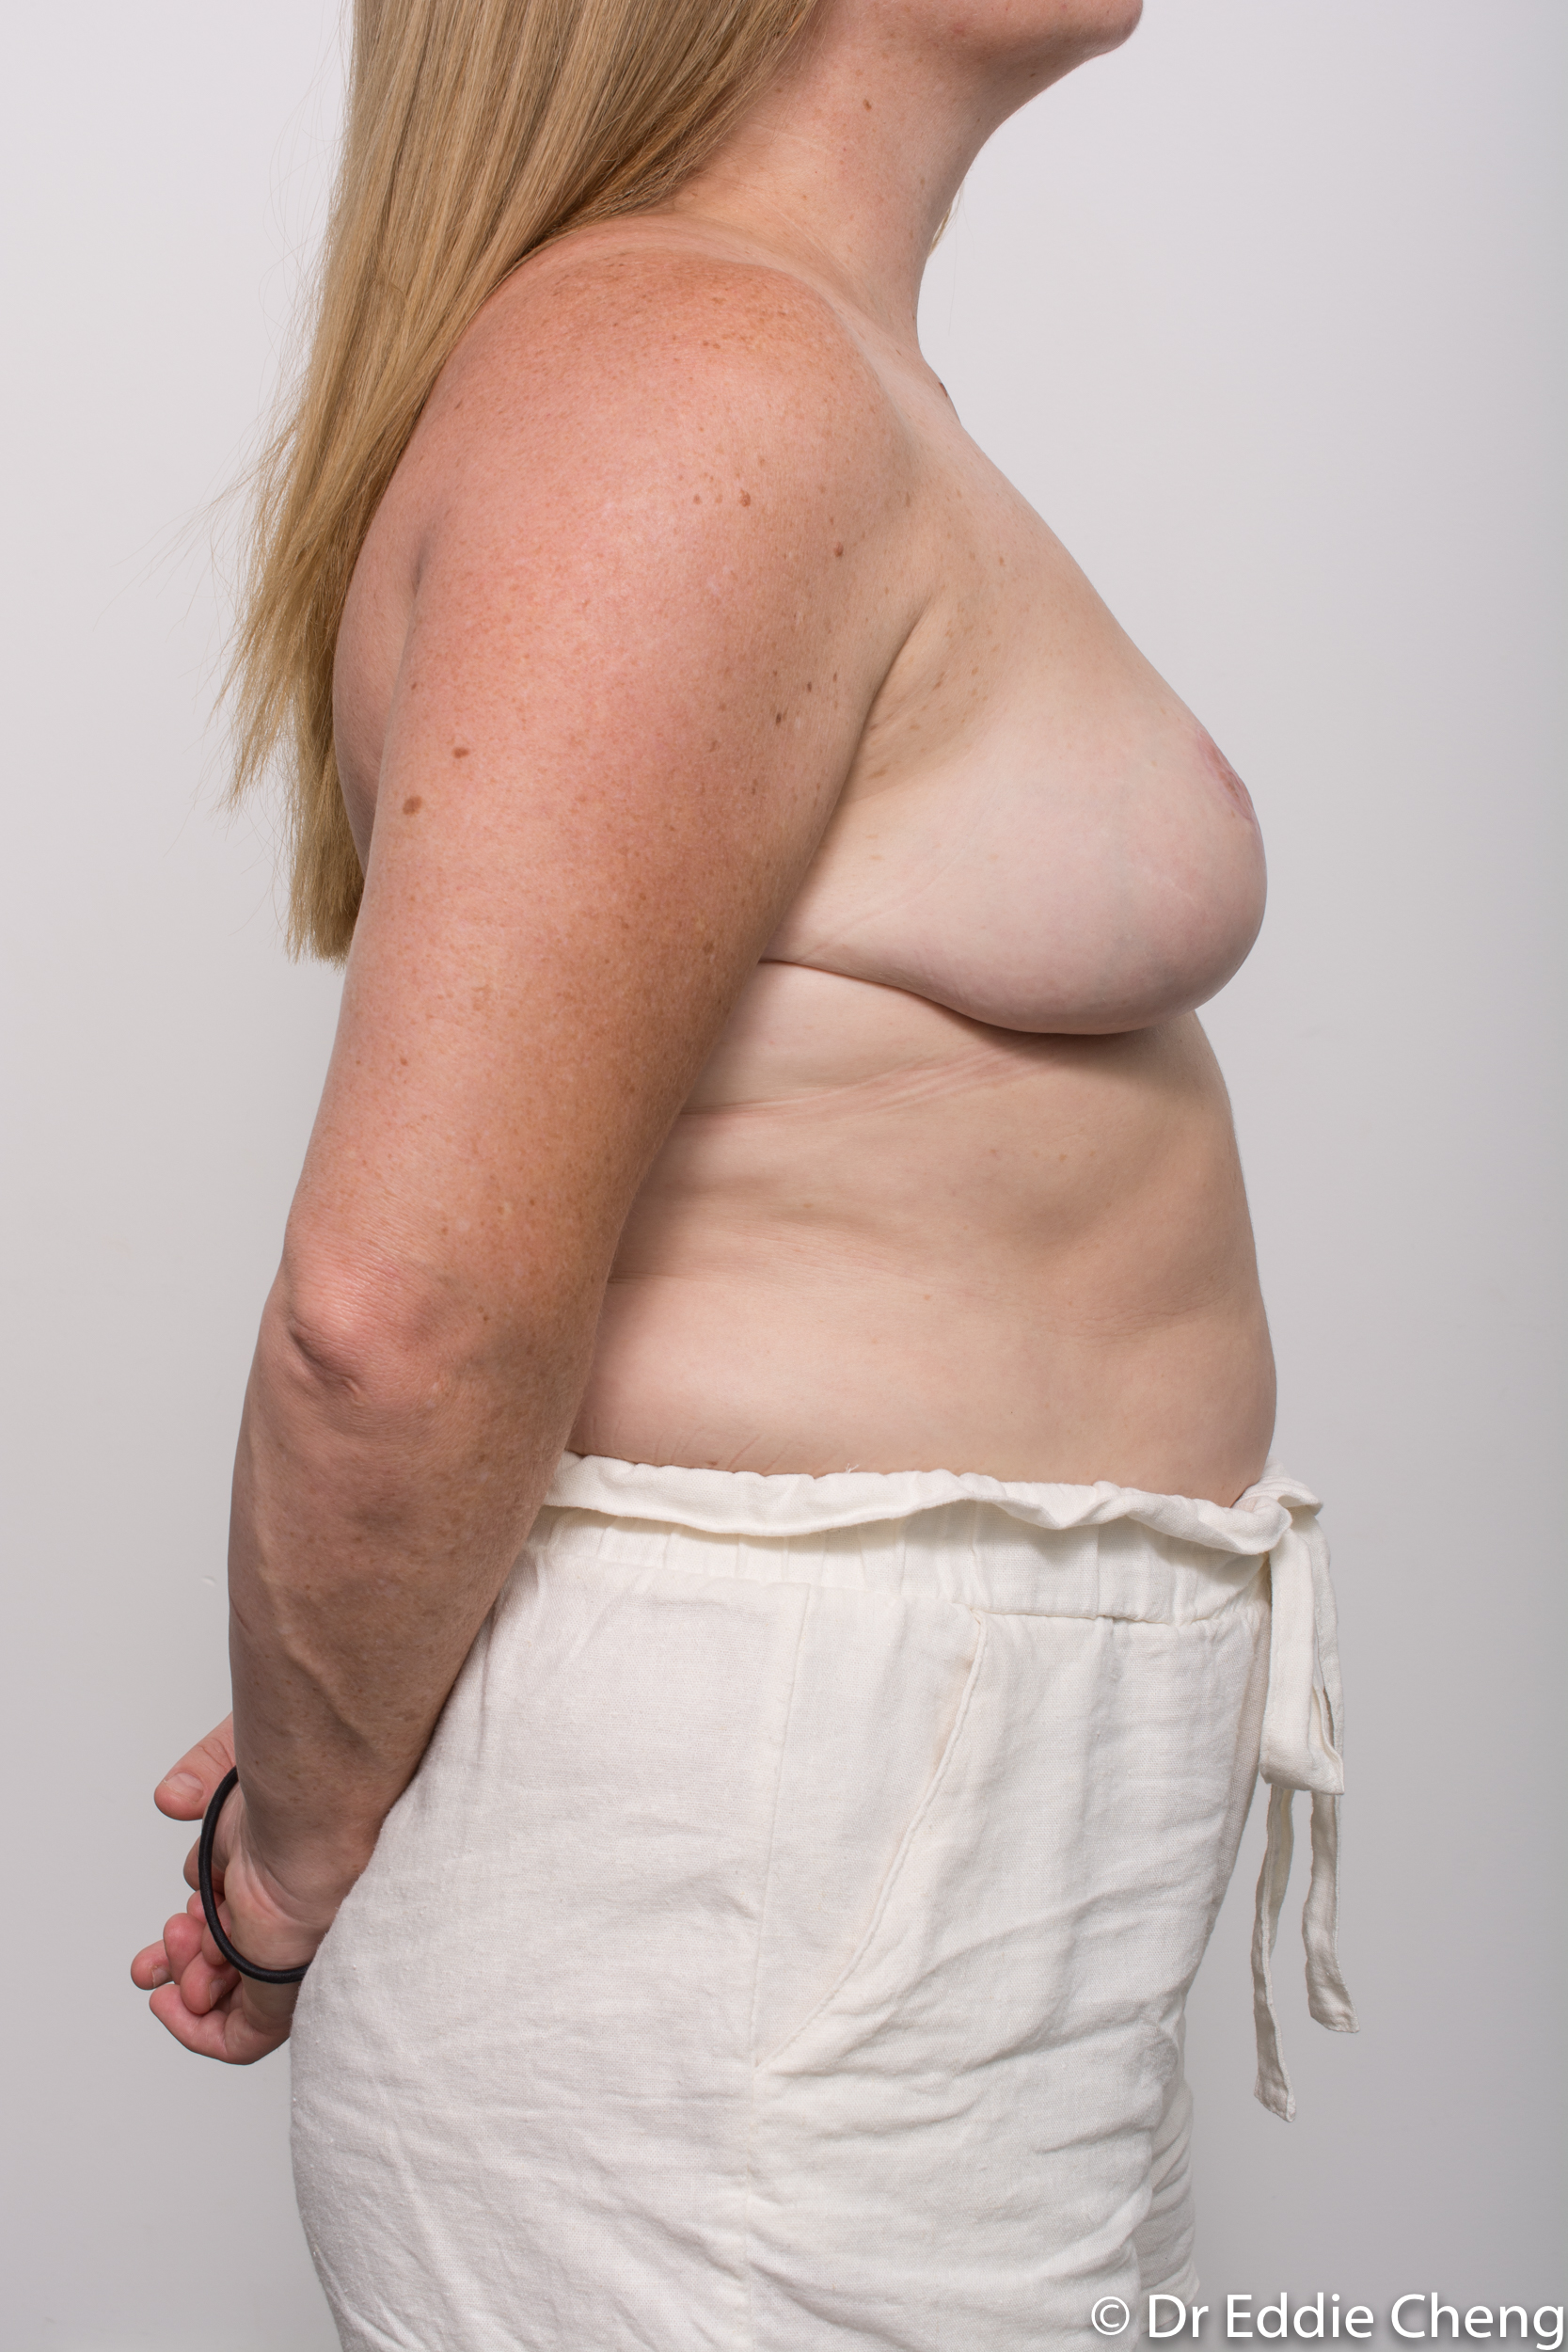 breast reduction dr eddie cheng brisbane surgeon pre and post operative images-9